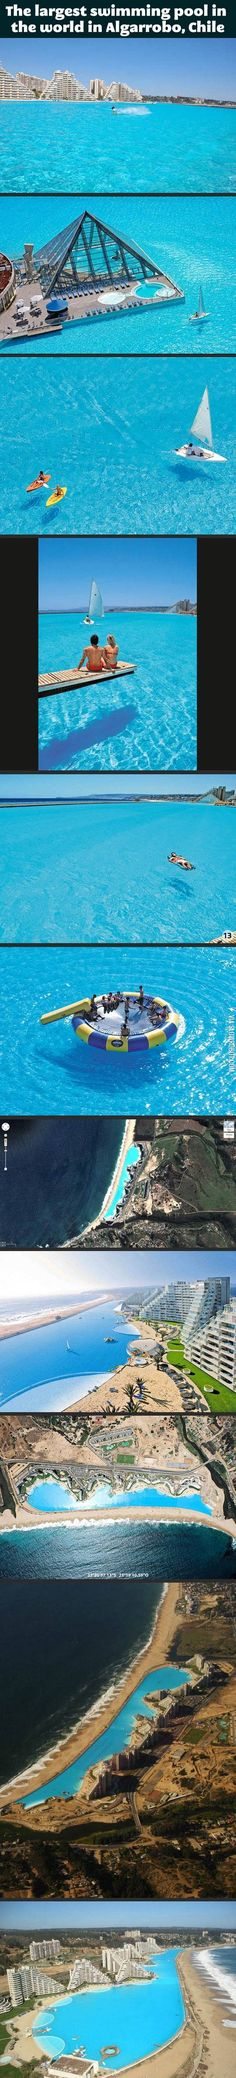 The world's largest swimming pool.